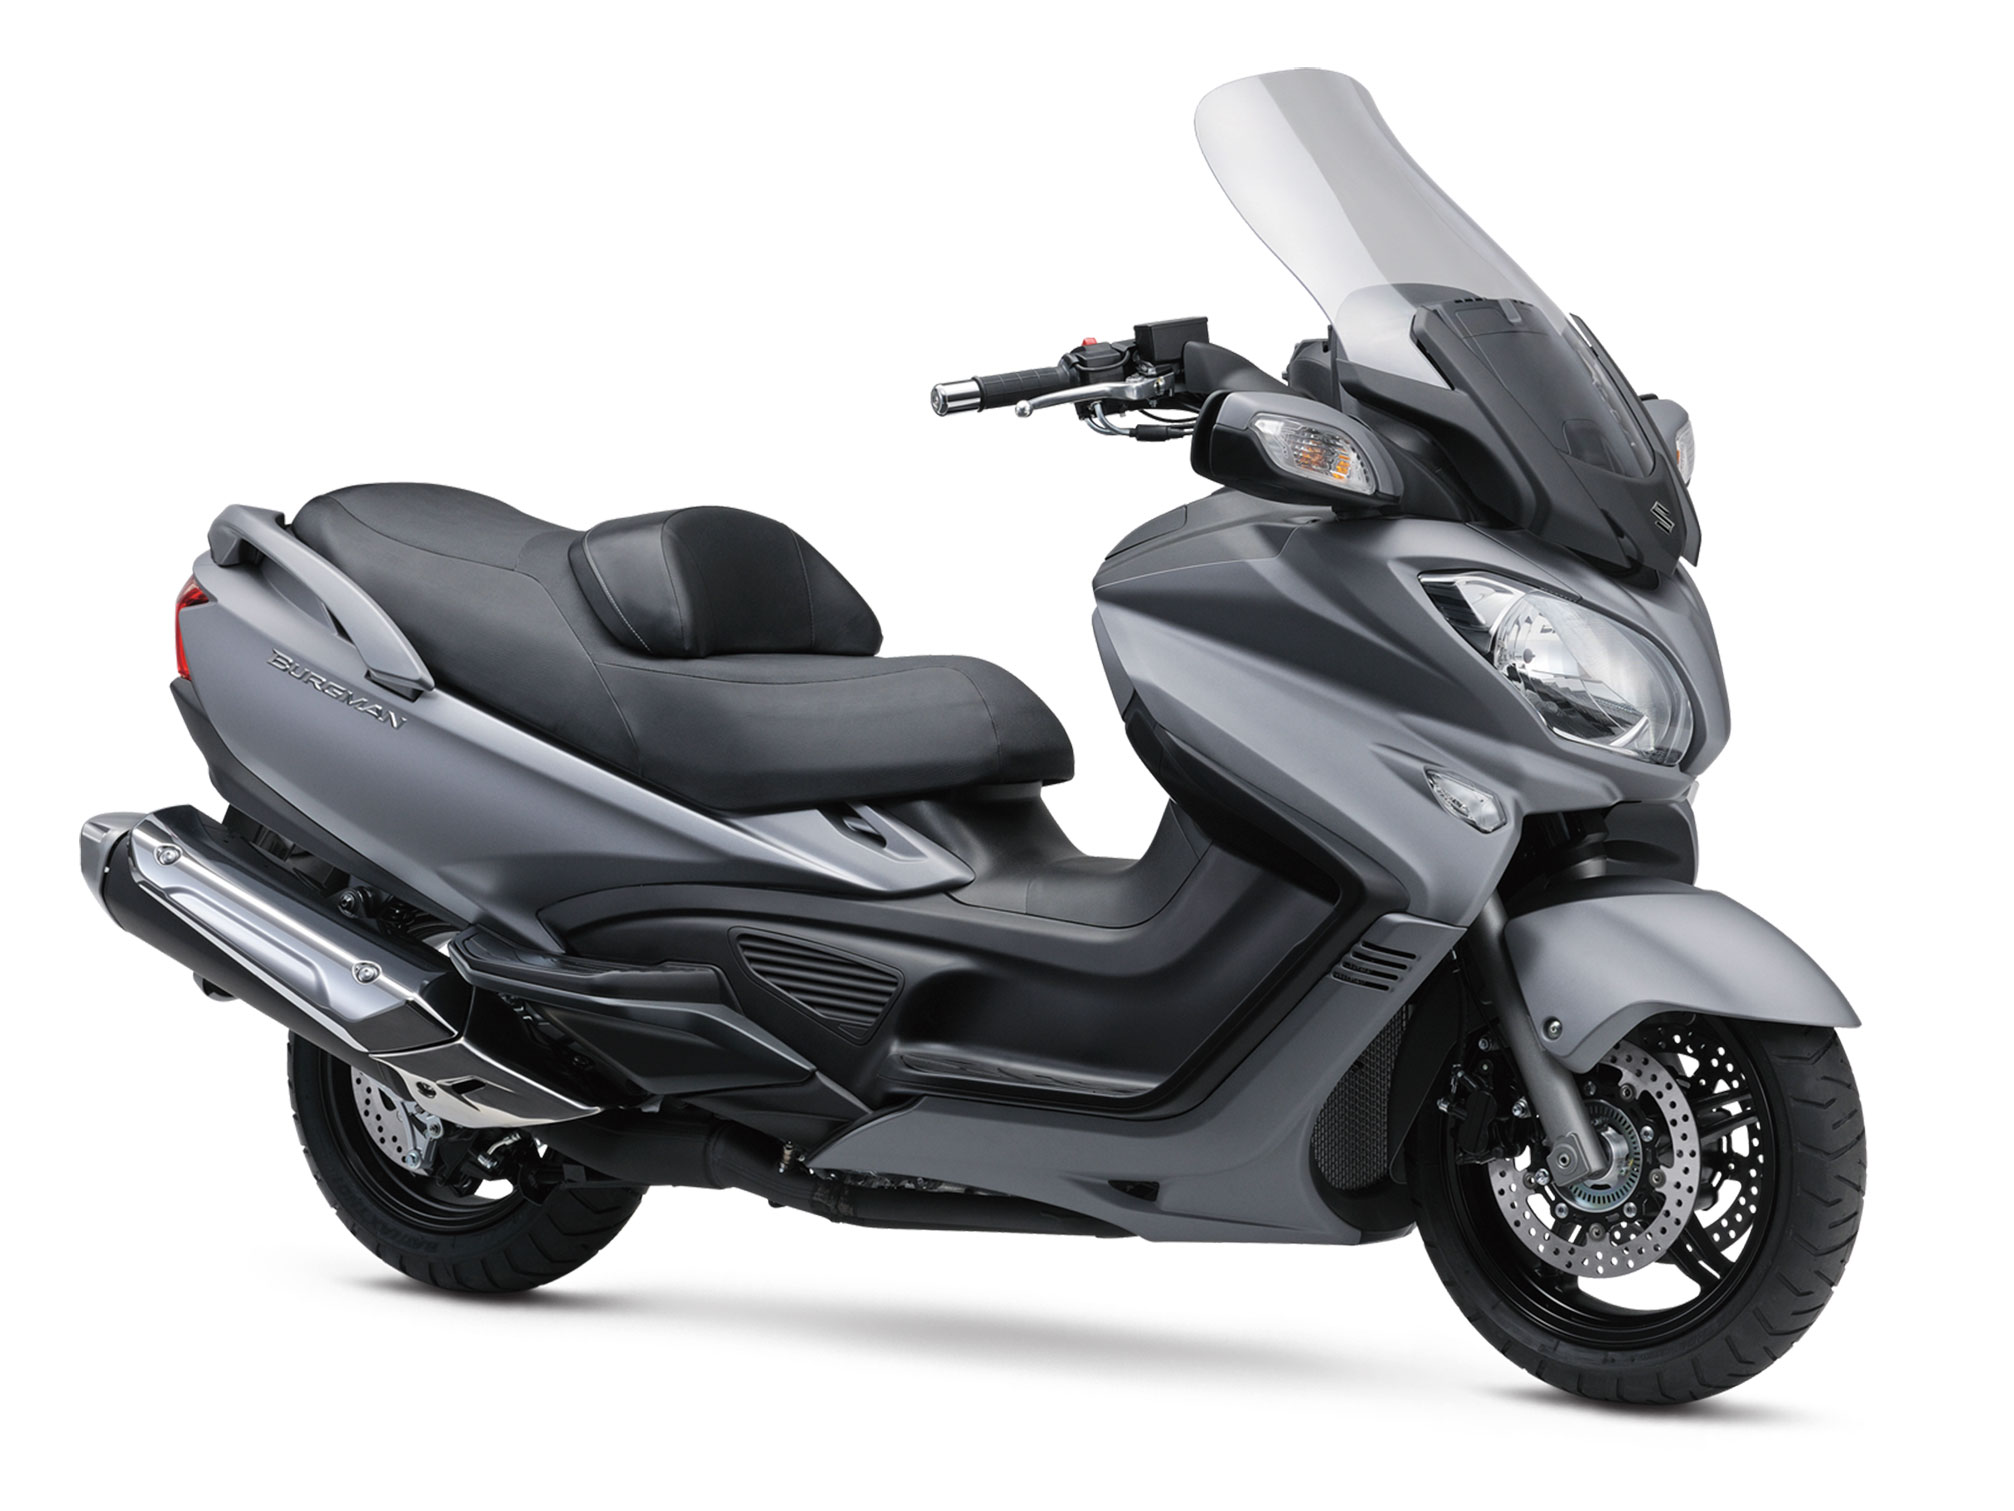 2014 suzuki burgman 650 abs review. Black Bedroom Furniture Sets. Home Design Ideas